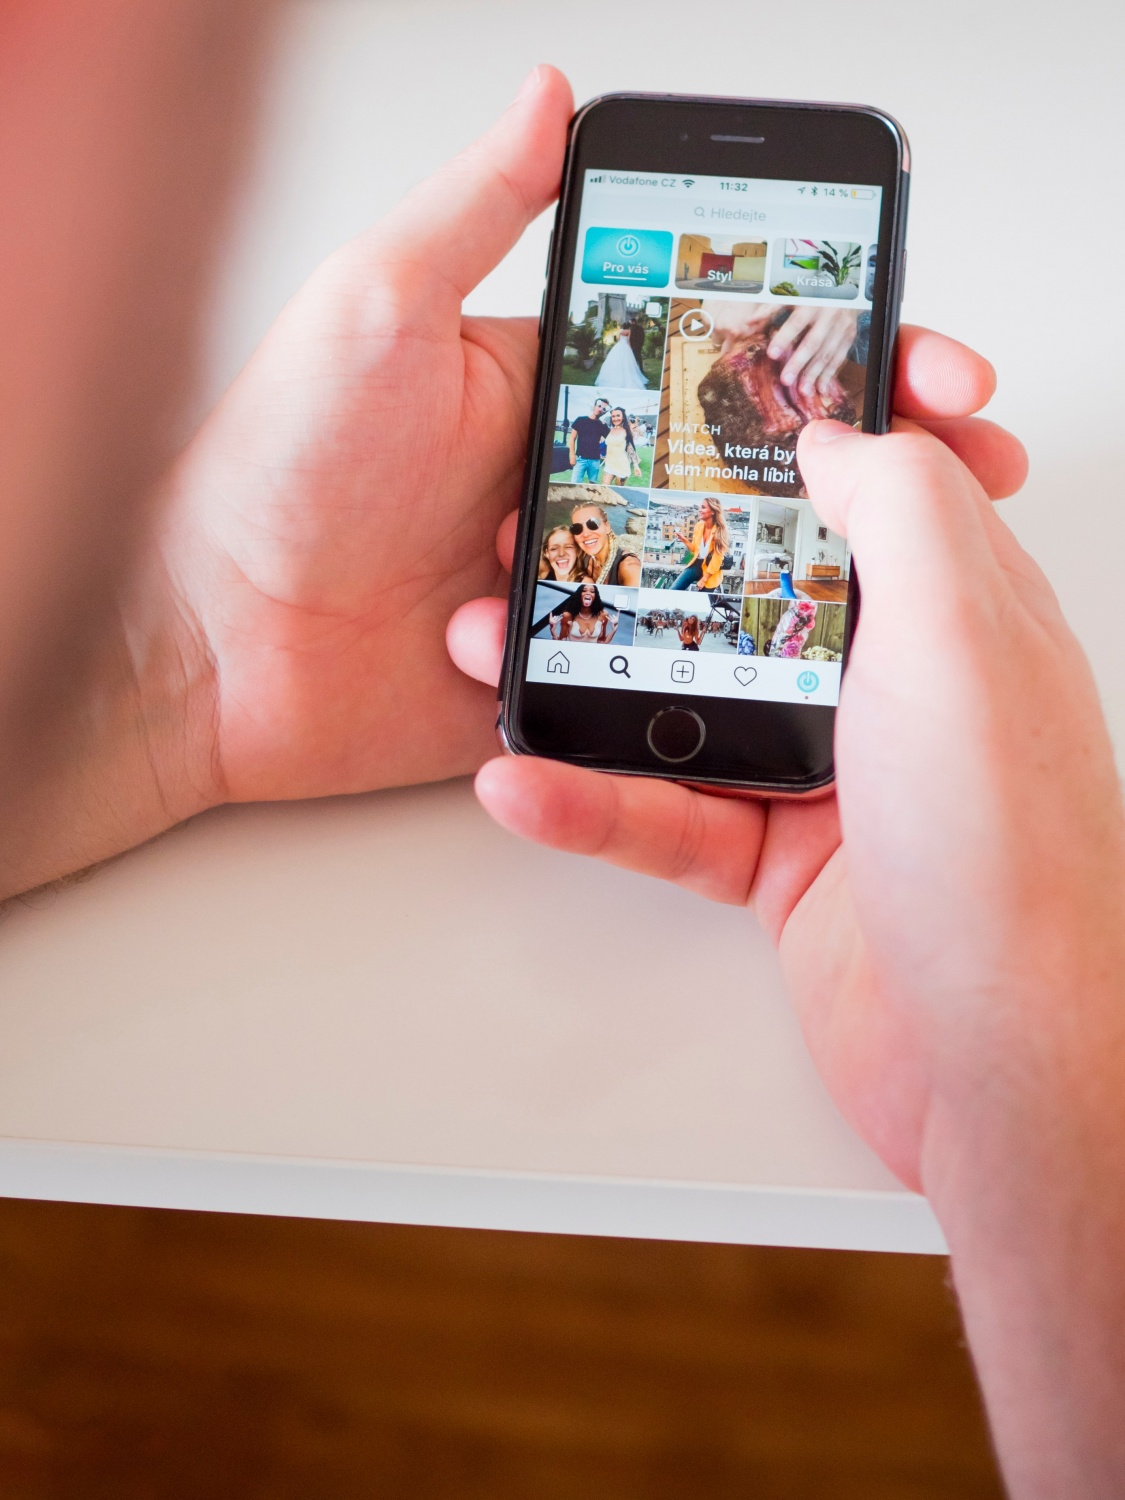 6 Surefire Instagram Marketing Tips That Actually Bring Results